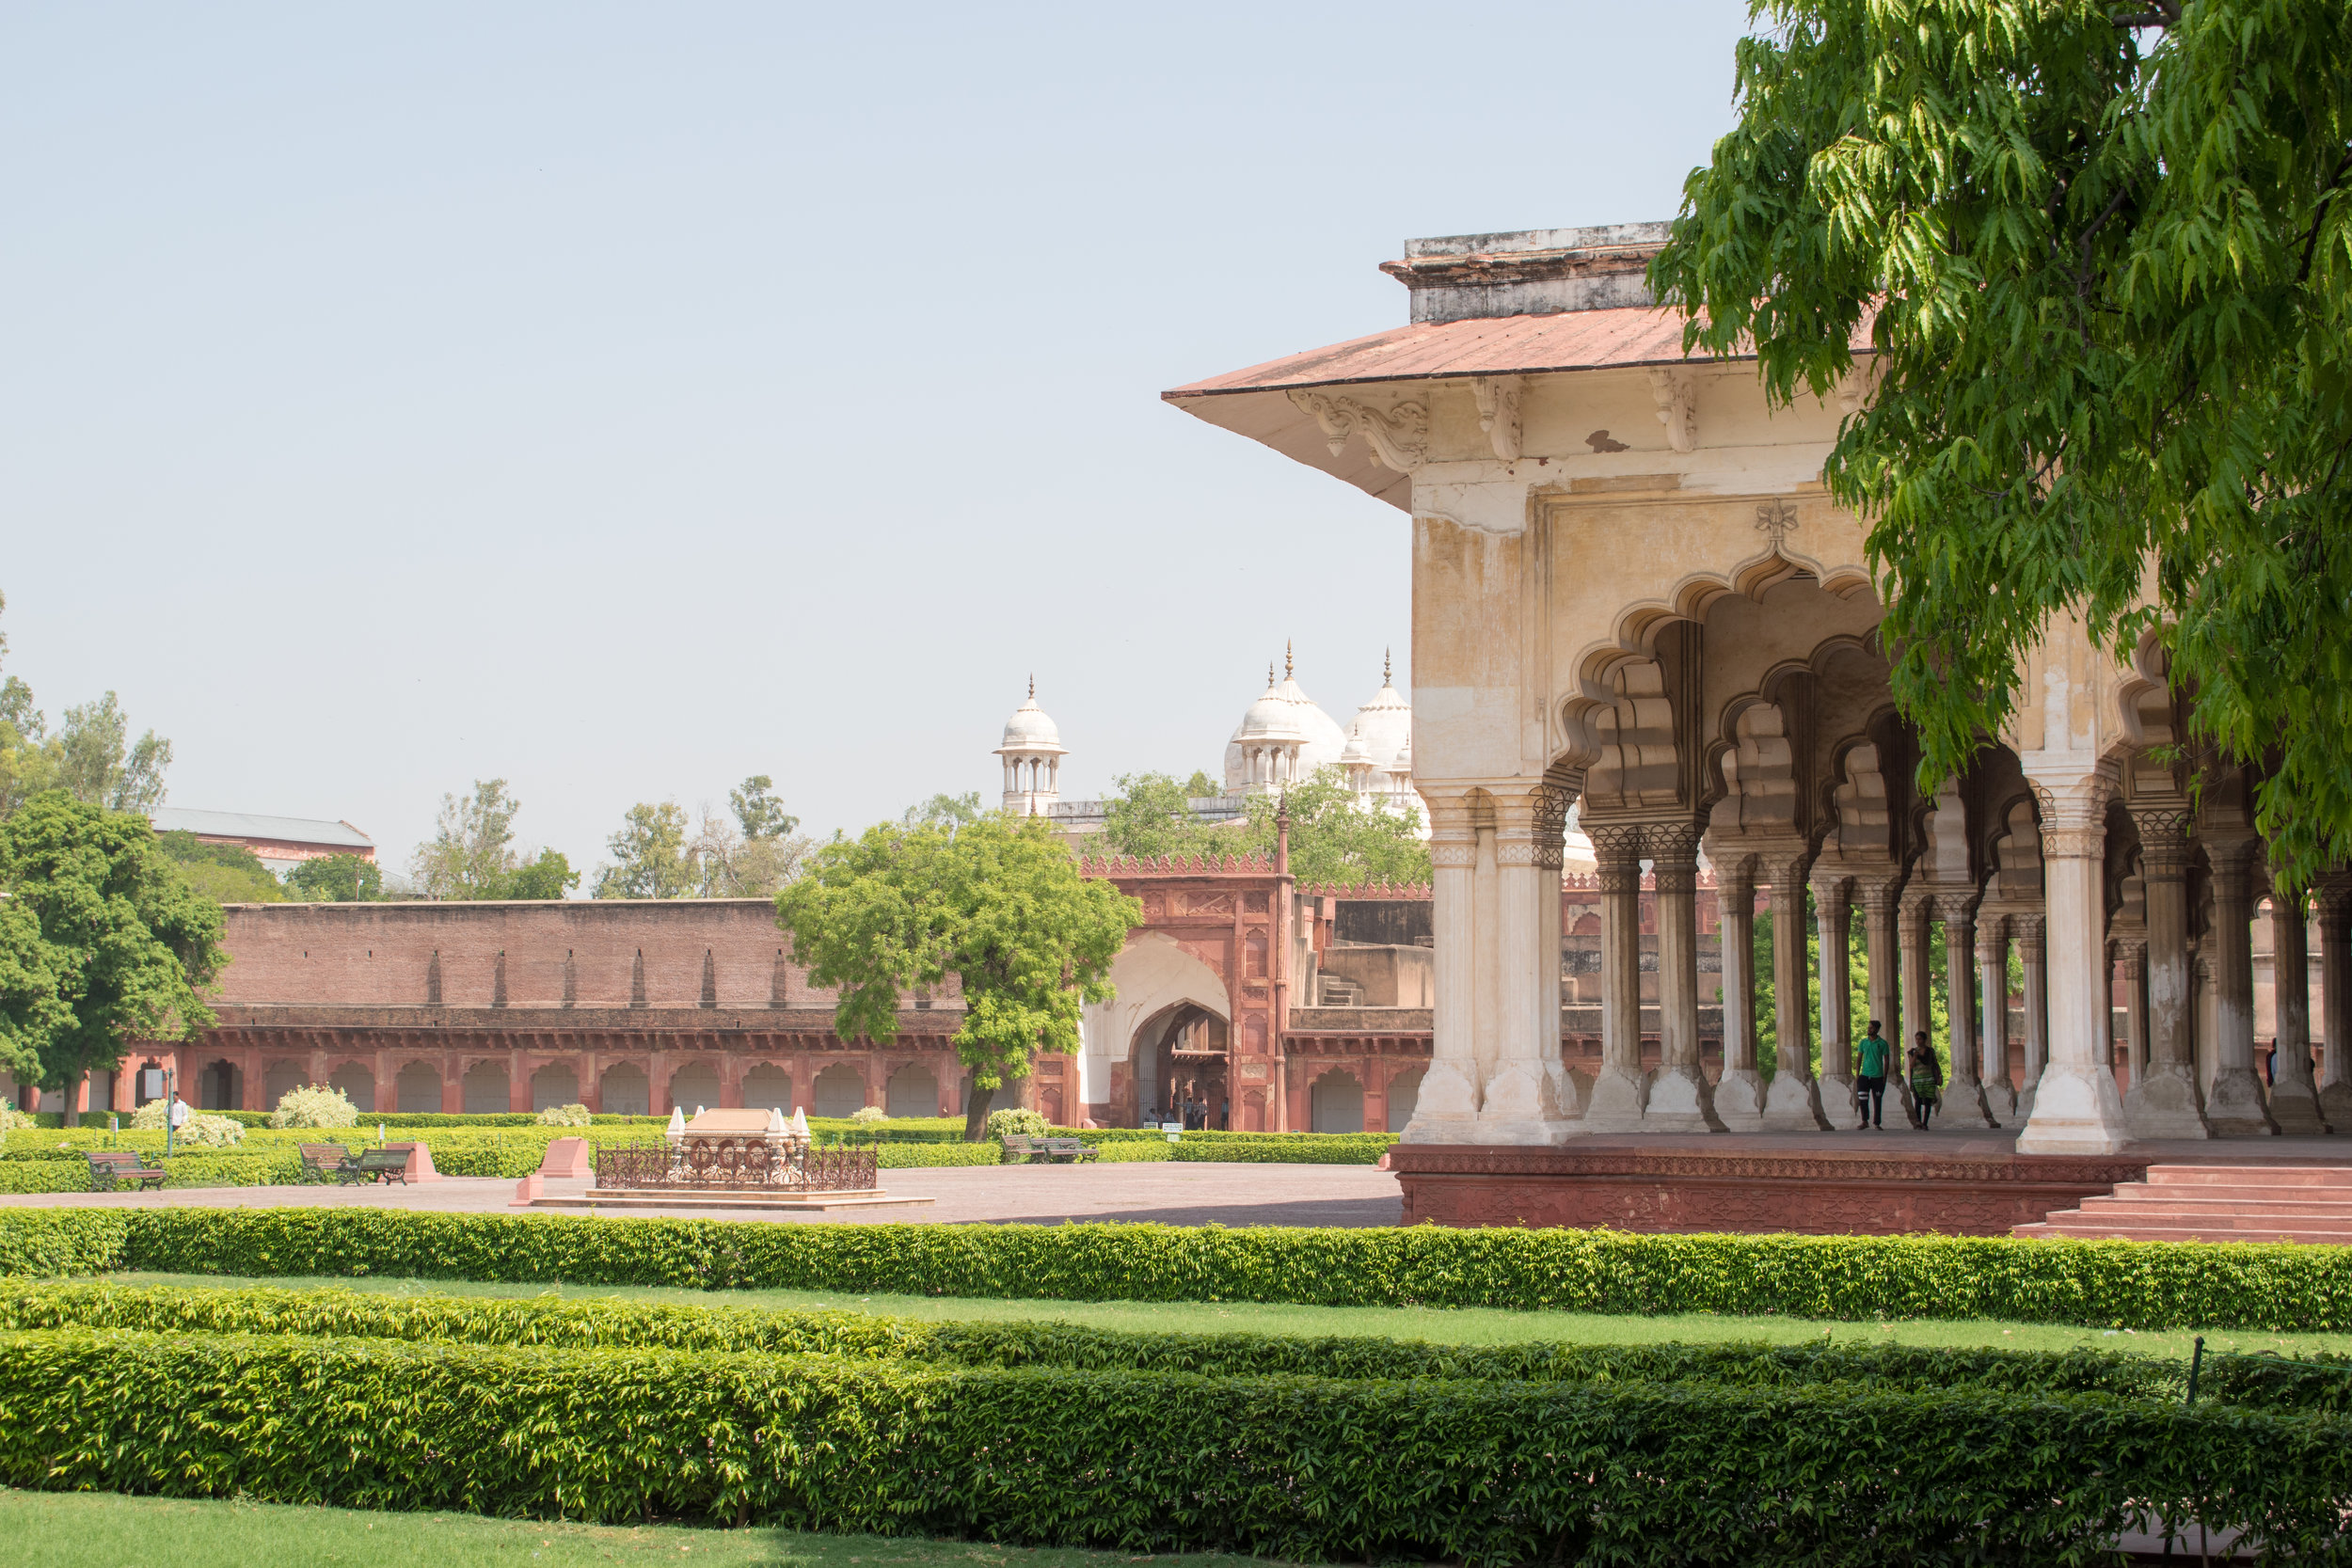 Gardens at Agra Fort, India